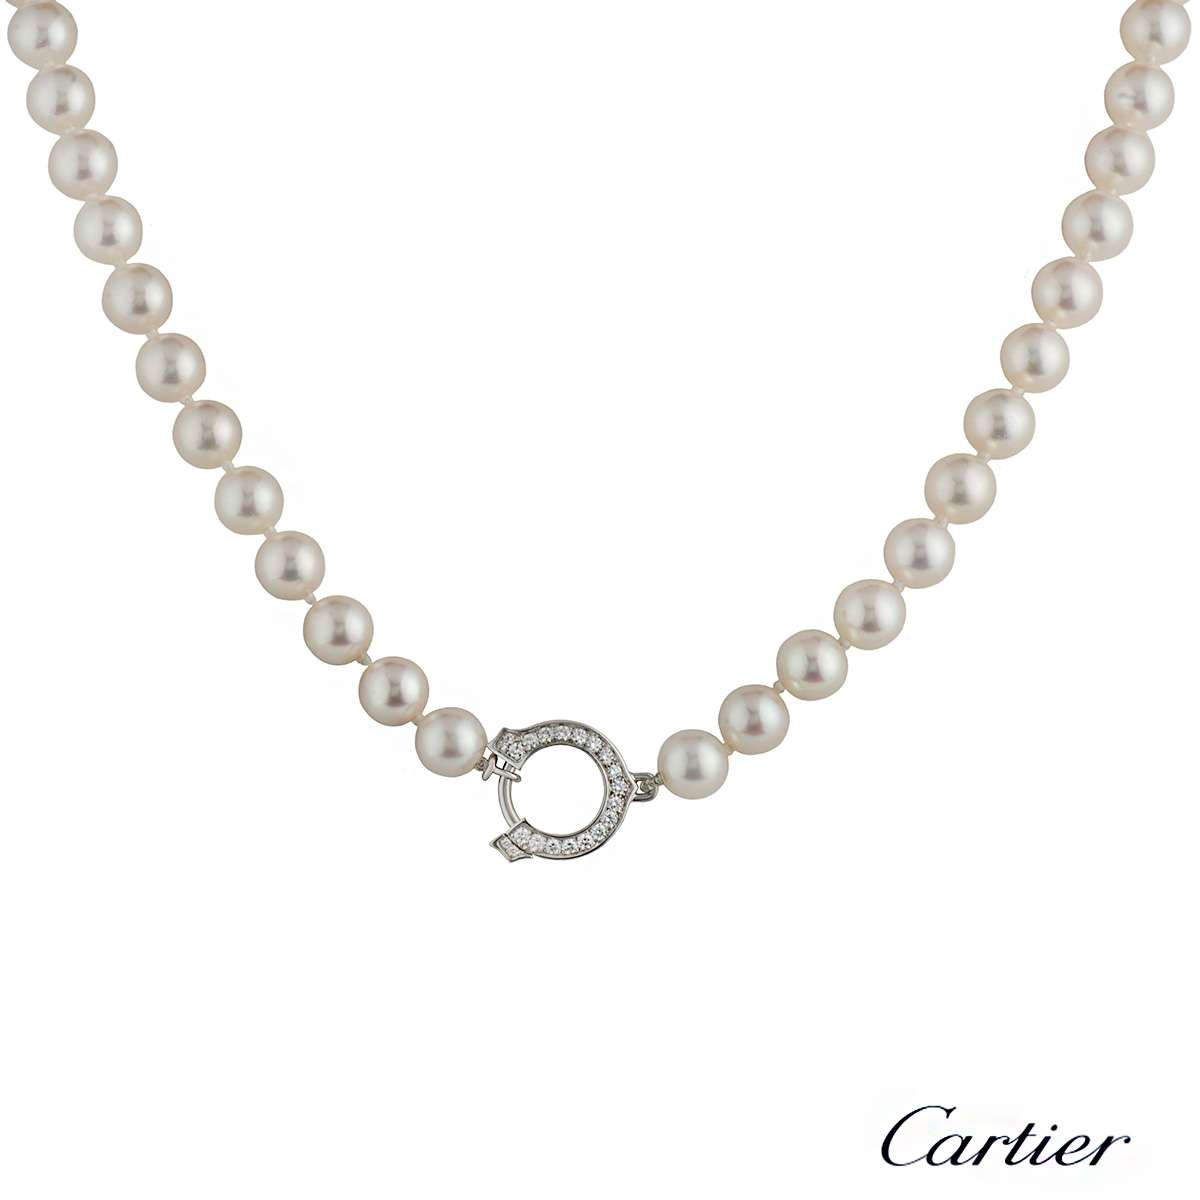 Cartier 18k White Gold Diamond and Pearl Necklace